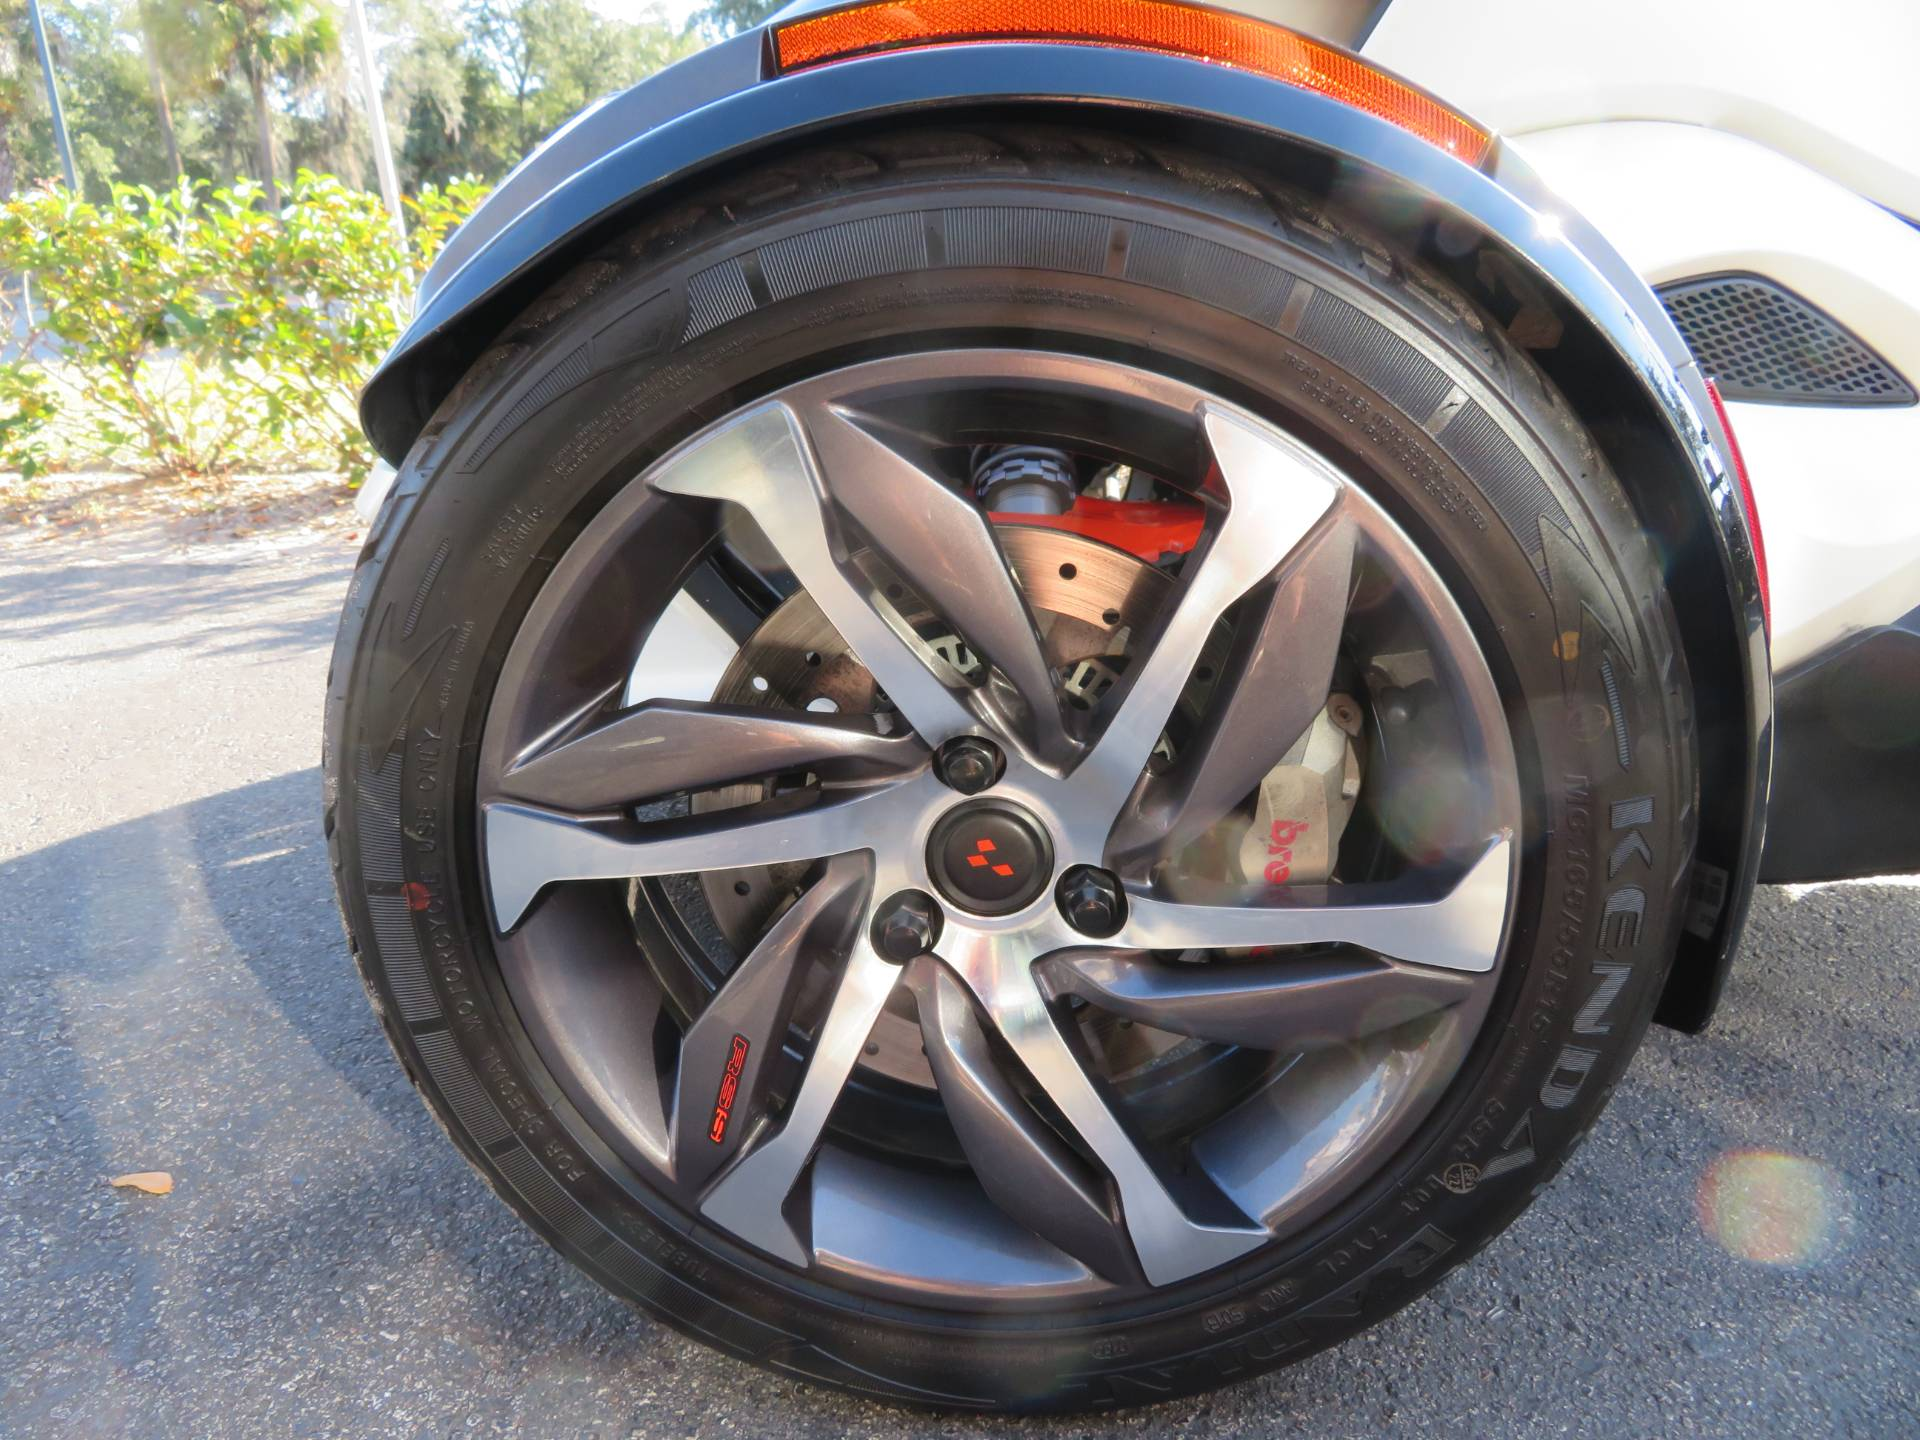 2014 Can-Am Spyder® RS-S SM5 in Sanford, Florida - Photo 14